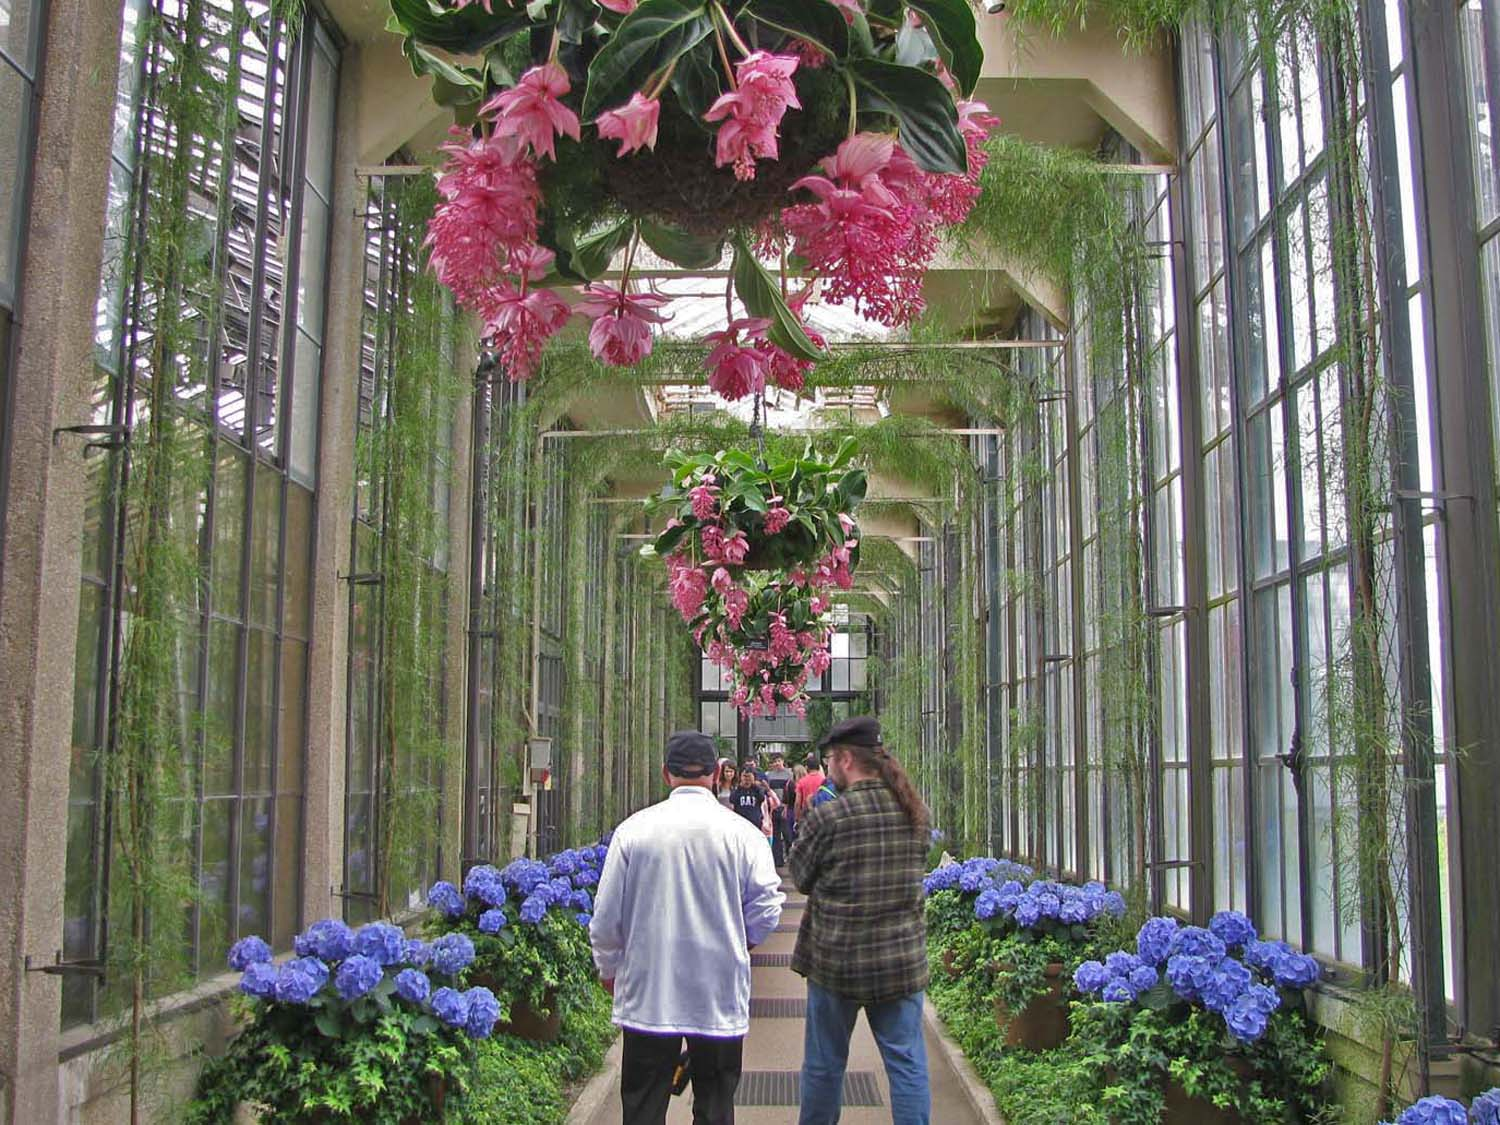 Larry and Paul enjoying the day at Longwood Gardens